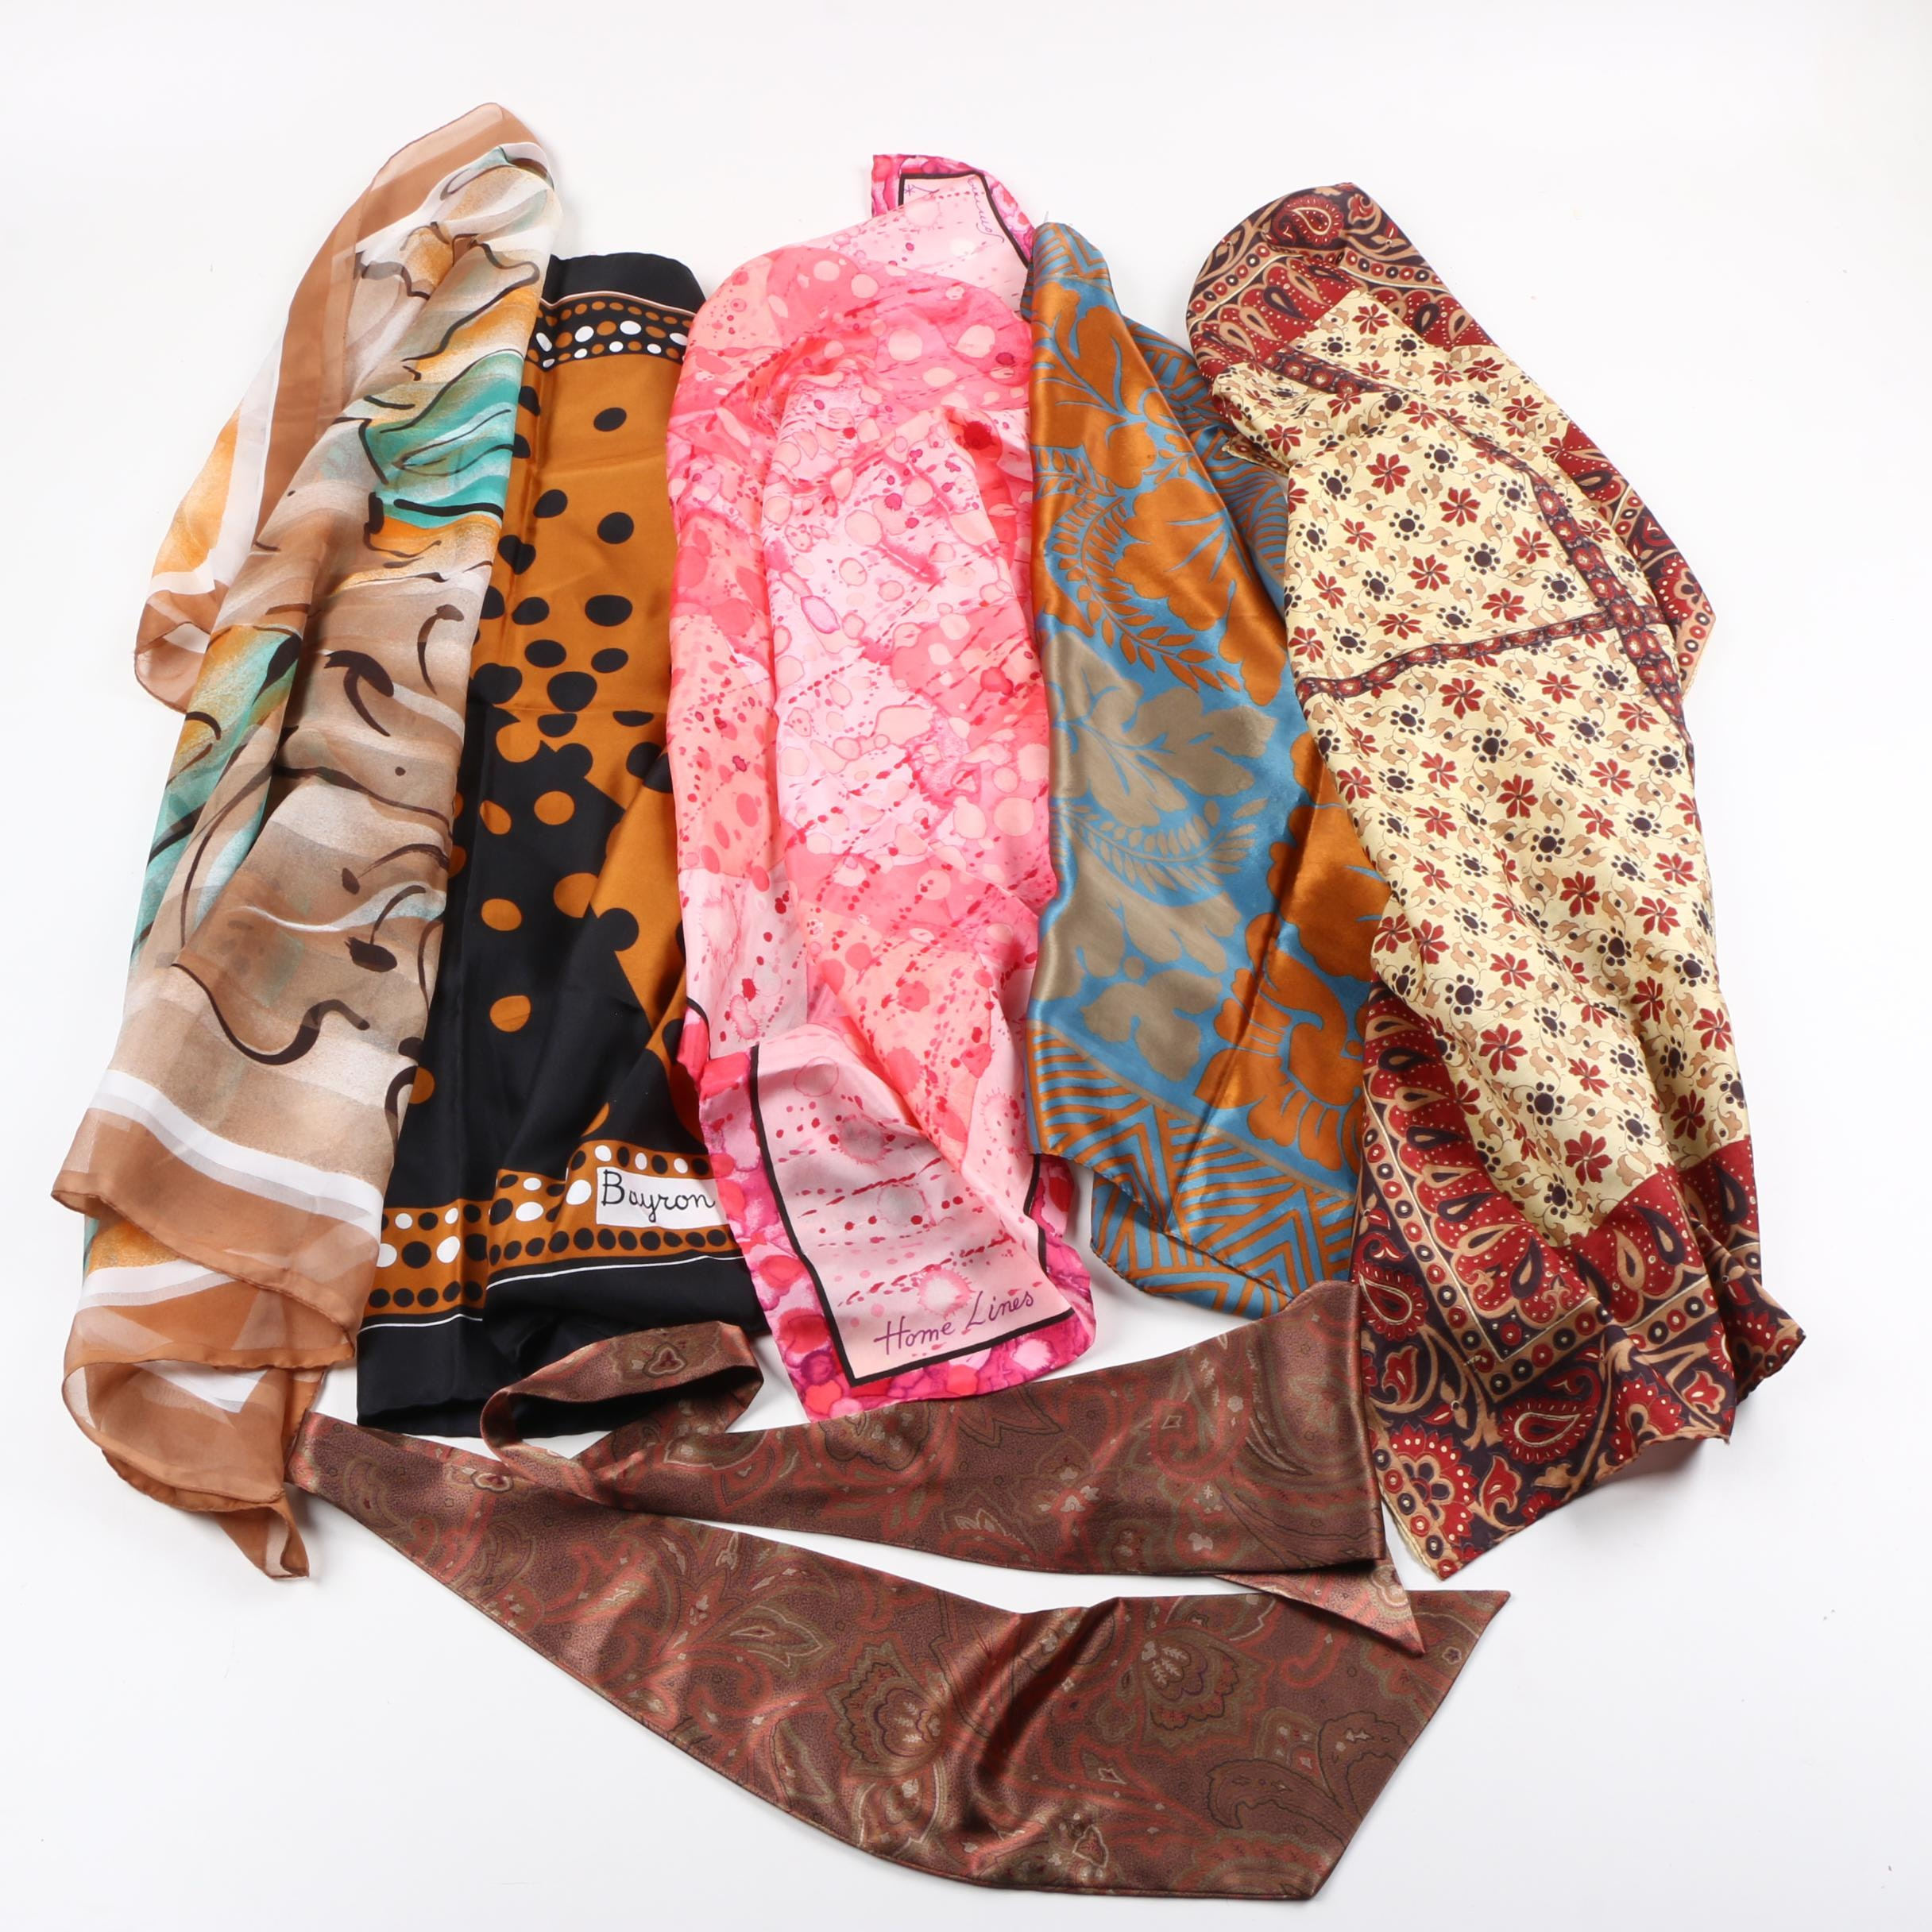 Scarves Including Home Lines and Bayron